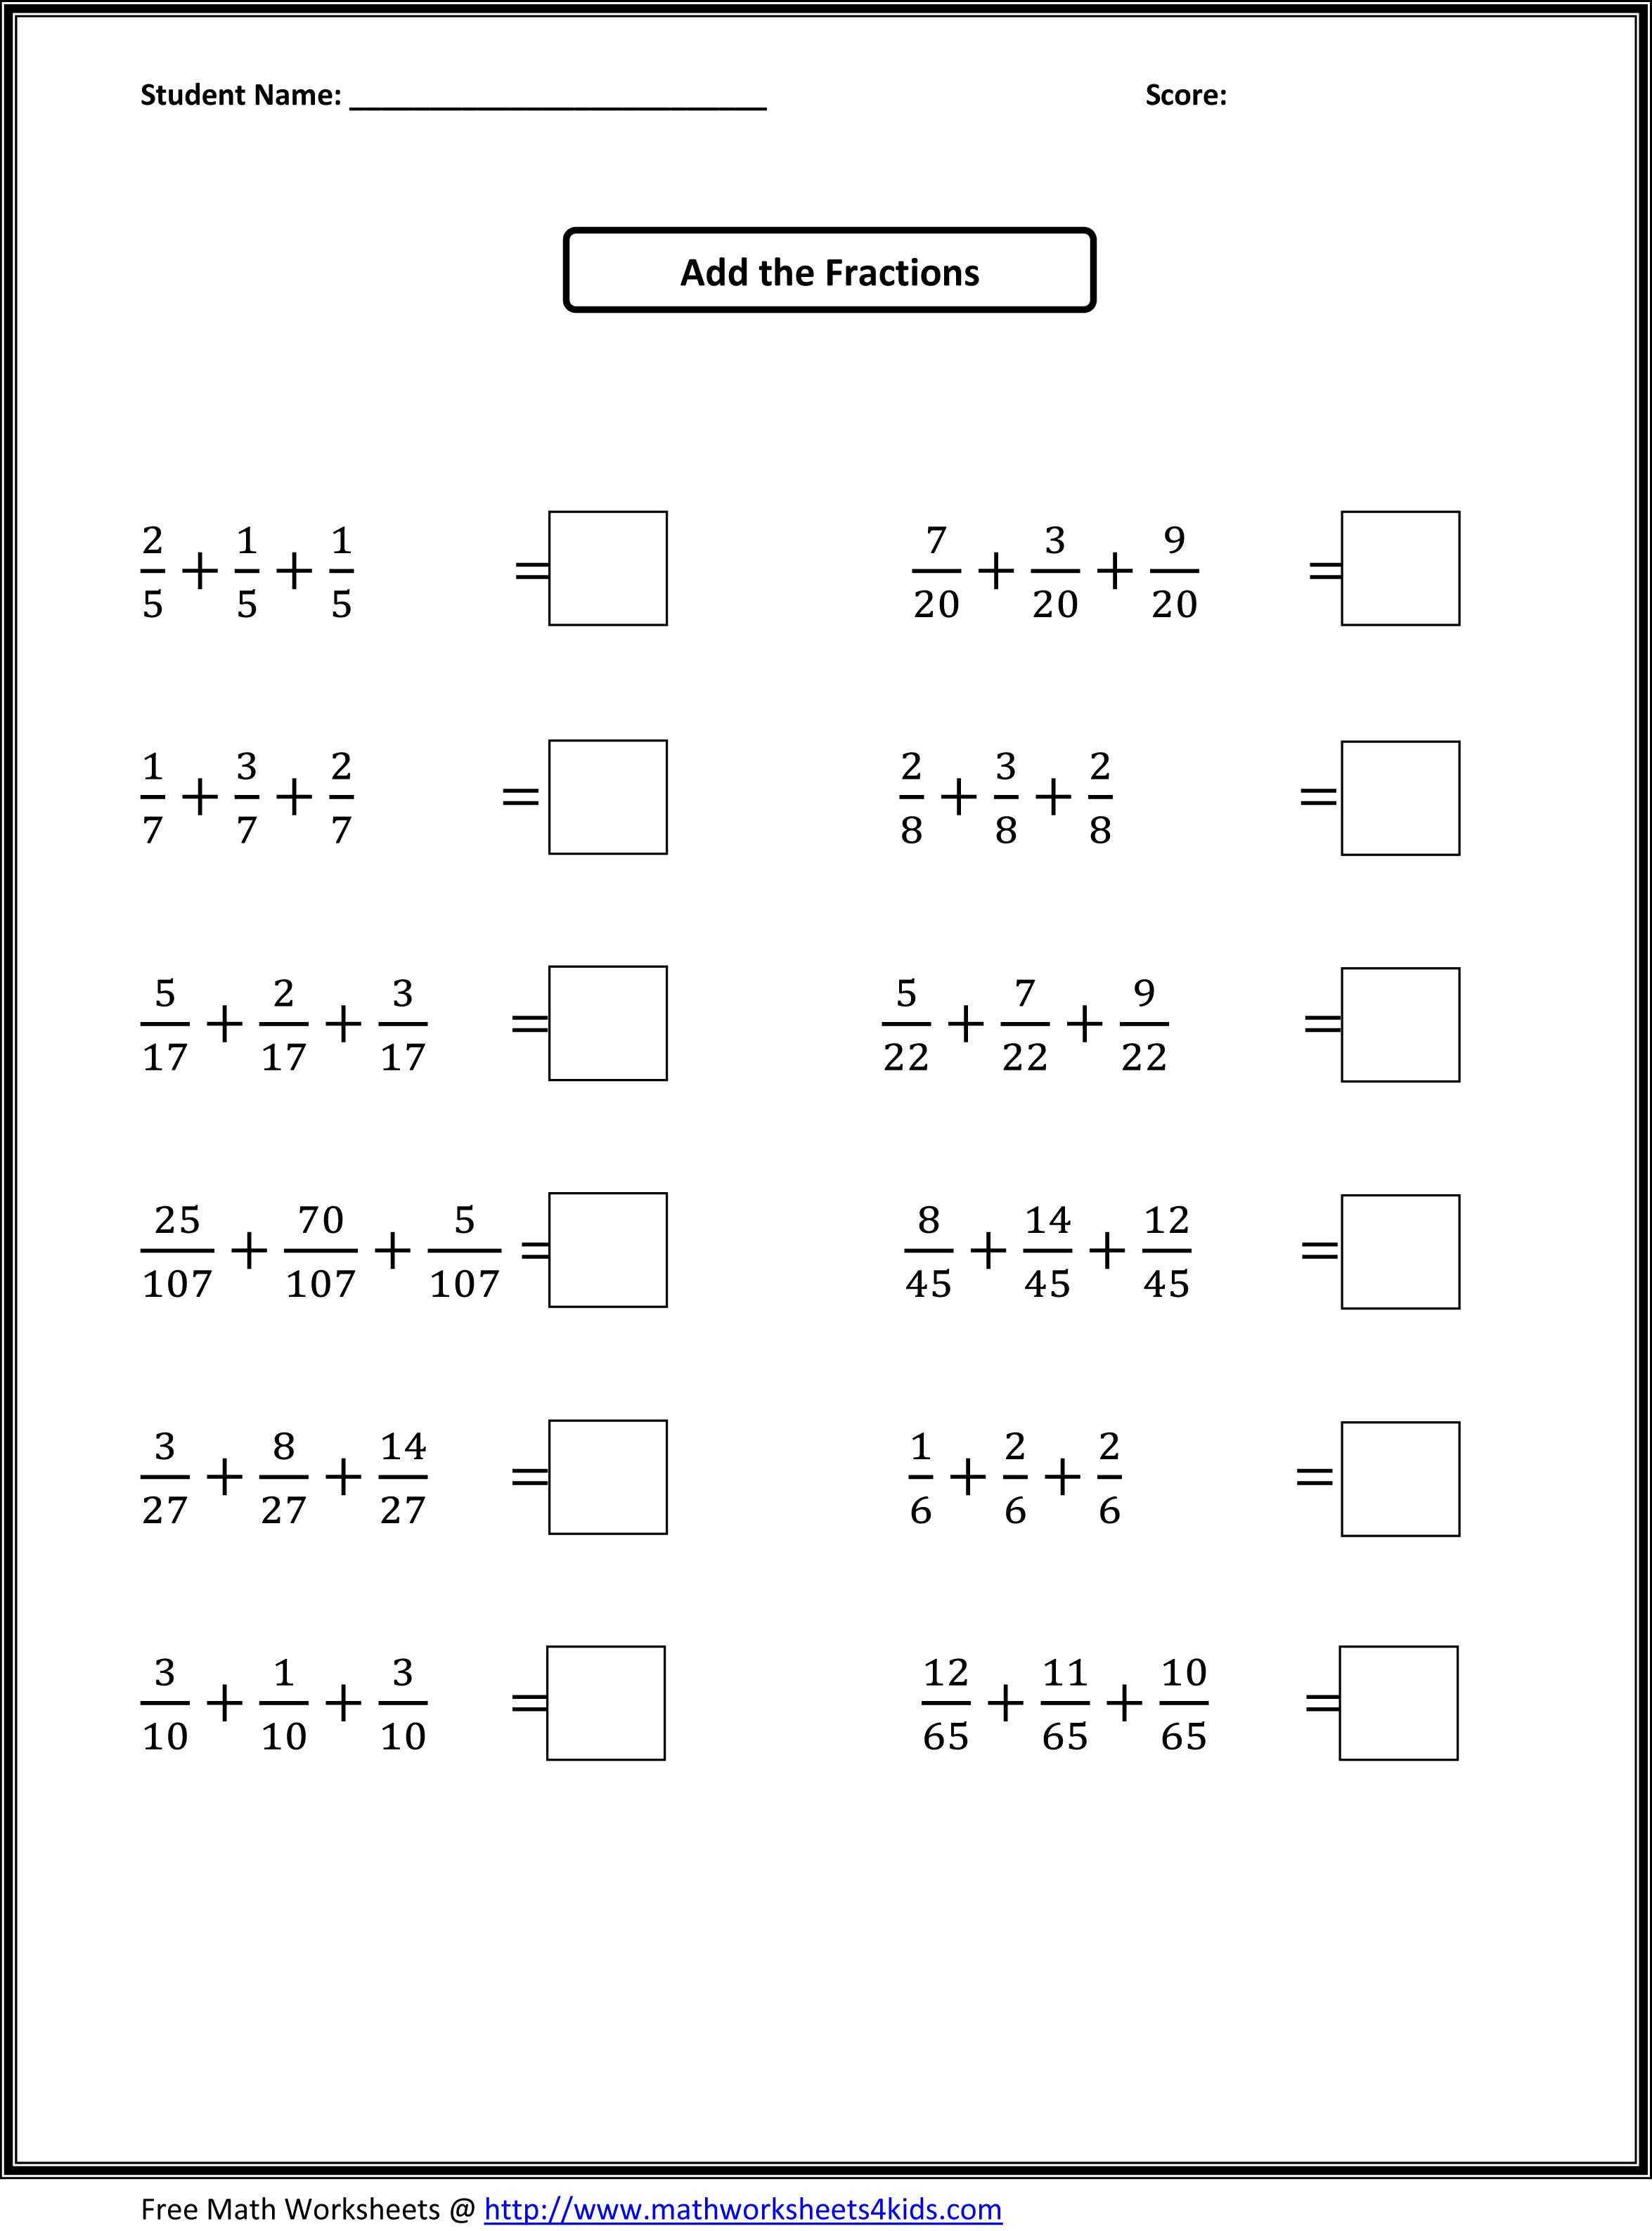 Printable Worksheetsgrade Level Andskill. | Teaching Ideas | 4Th Grade Printable Worksheets On Math